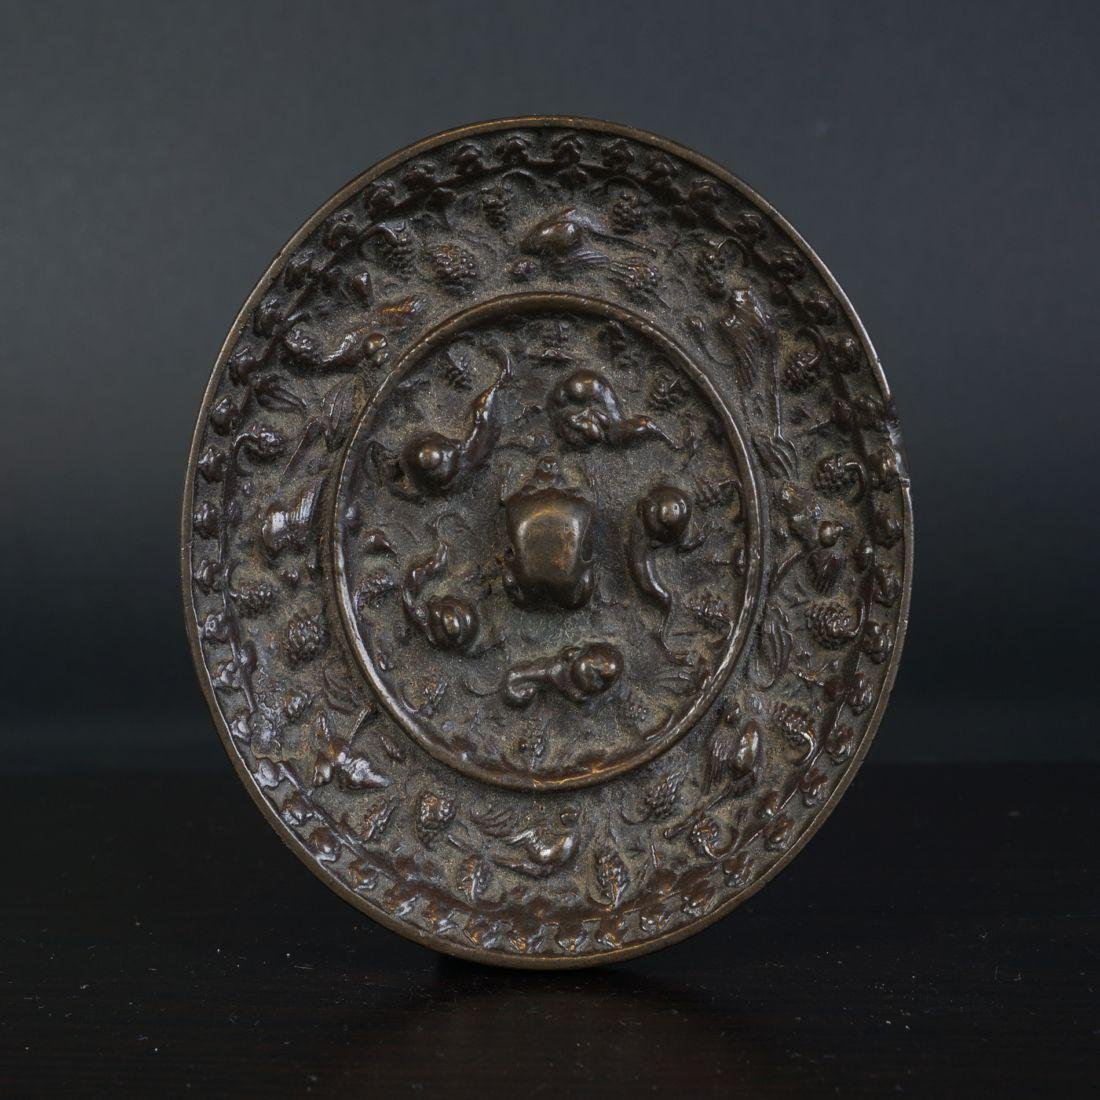 Very special antique Chinese bronze Miror Tang Dynasty